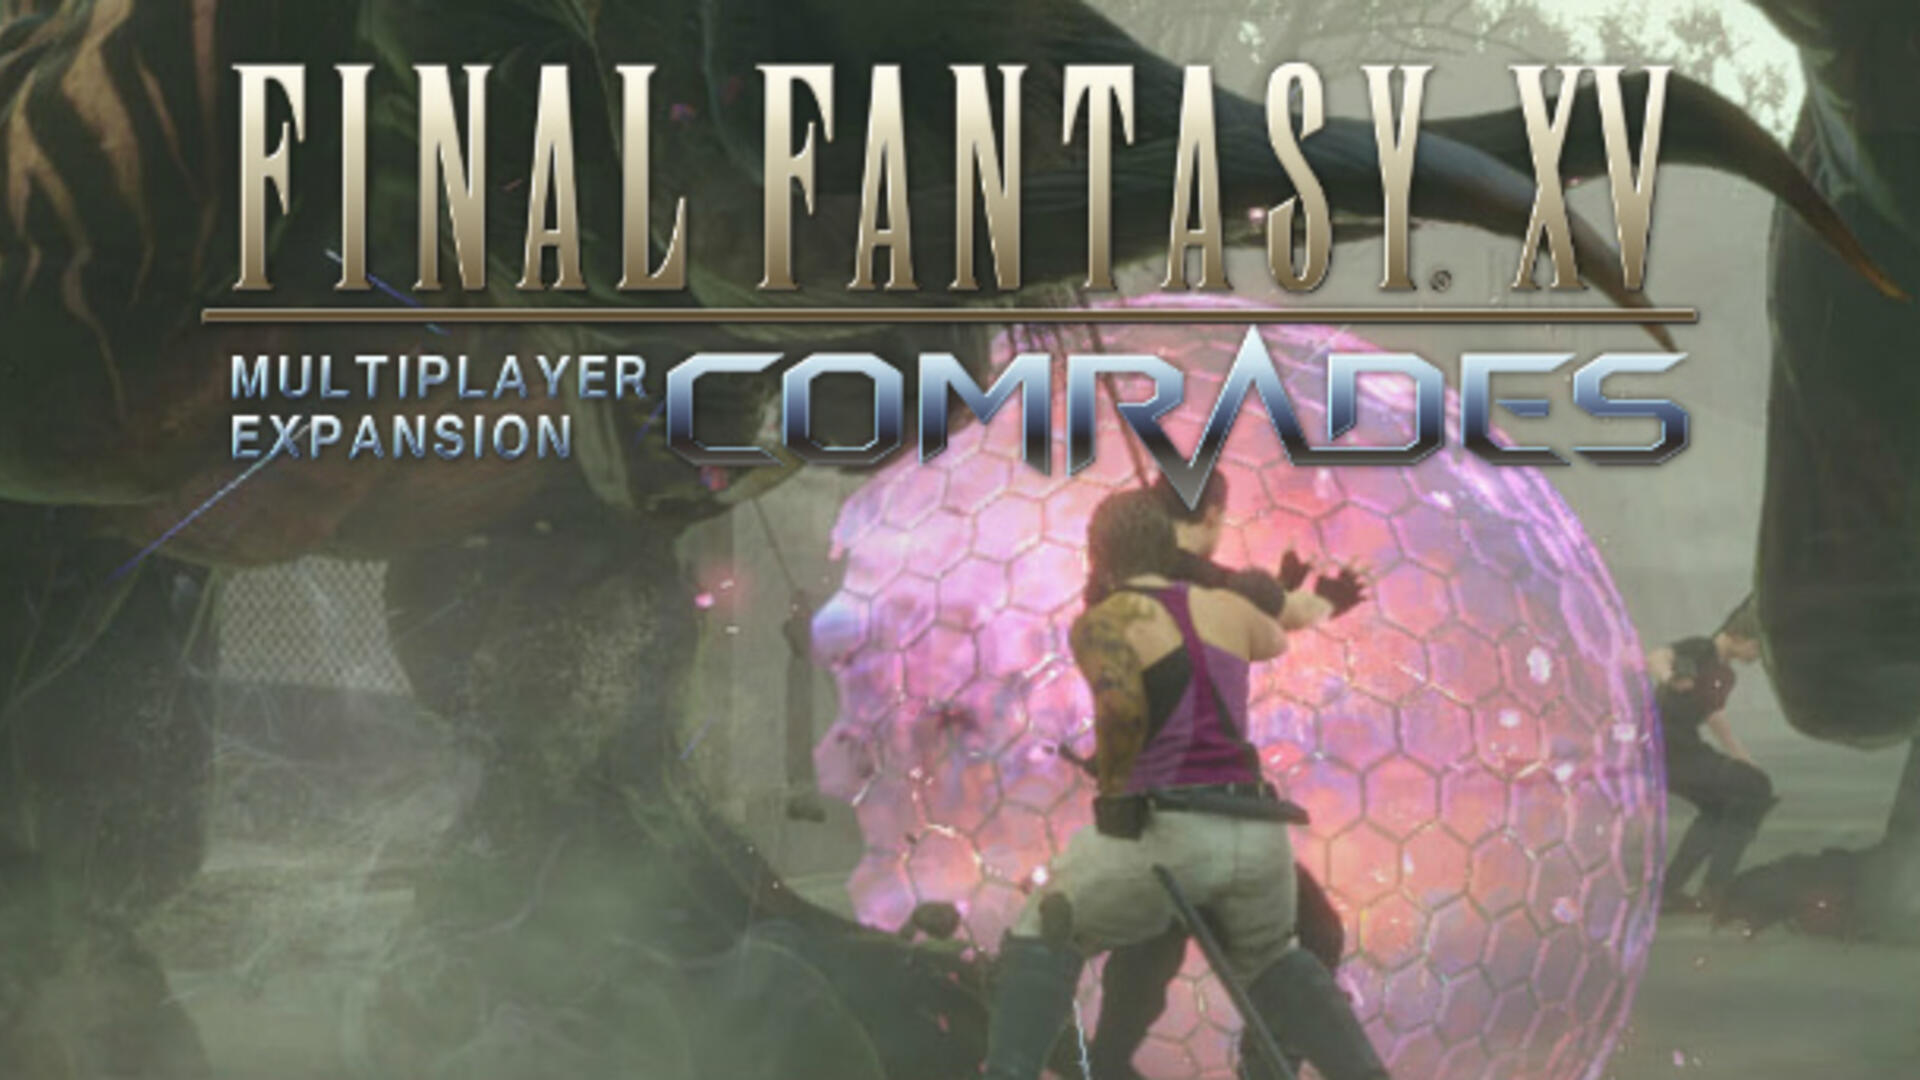 Final Fantasy XV Comrades Multiplayer Has a Release Date